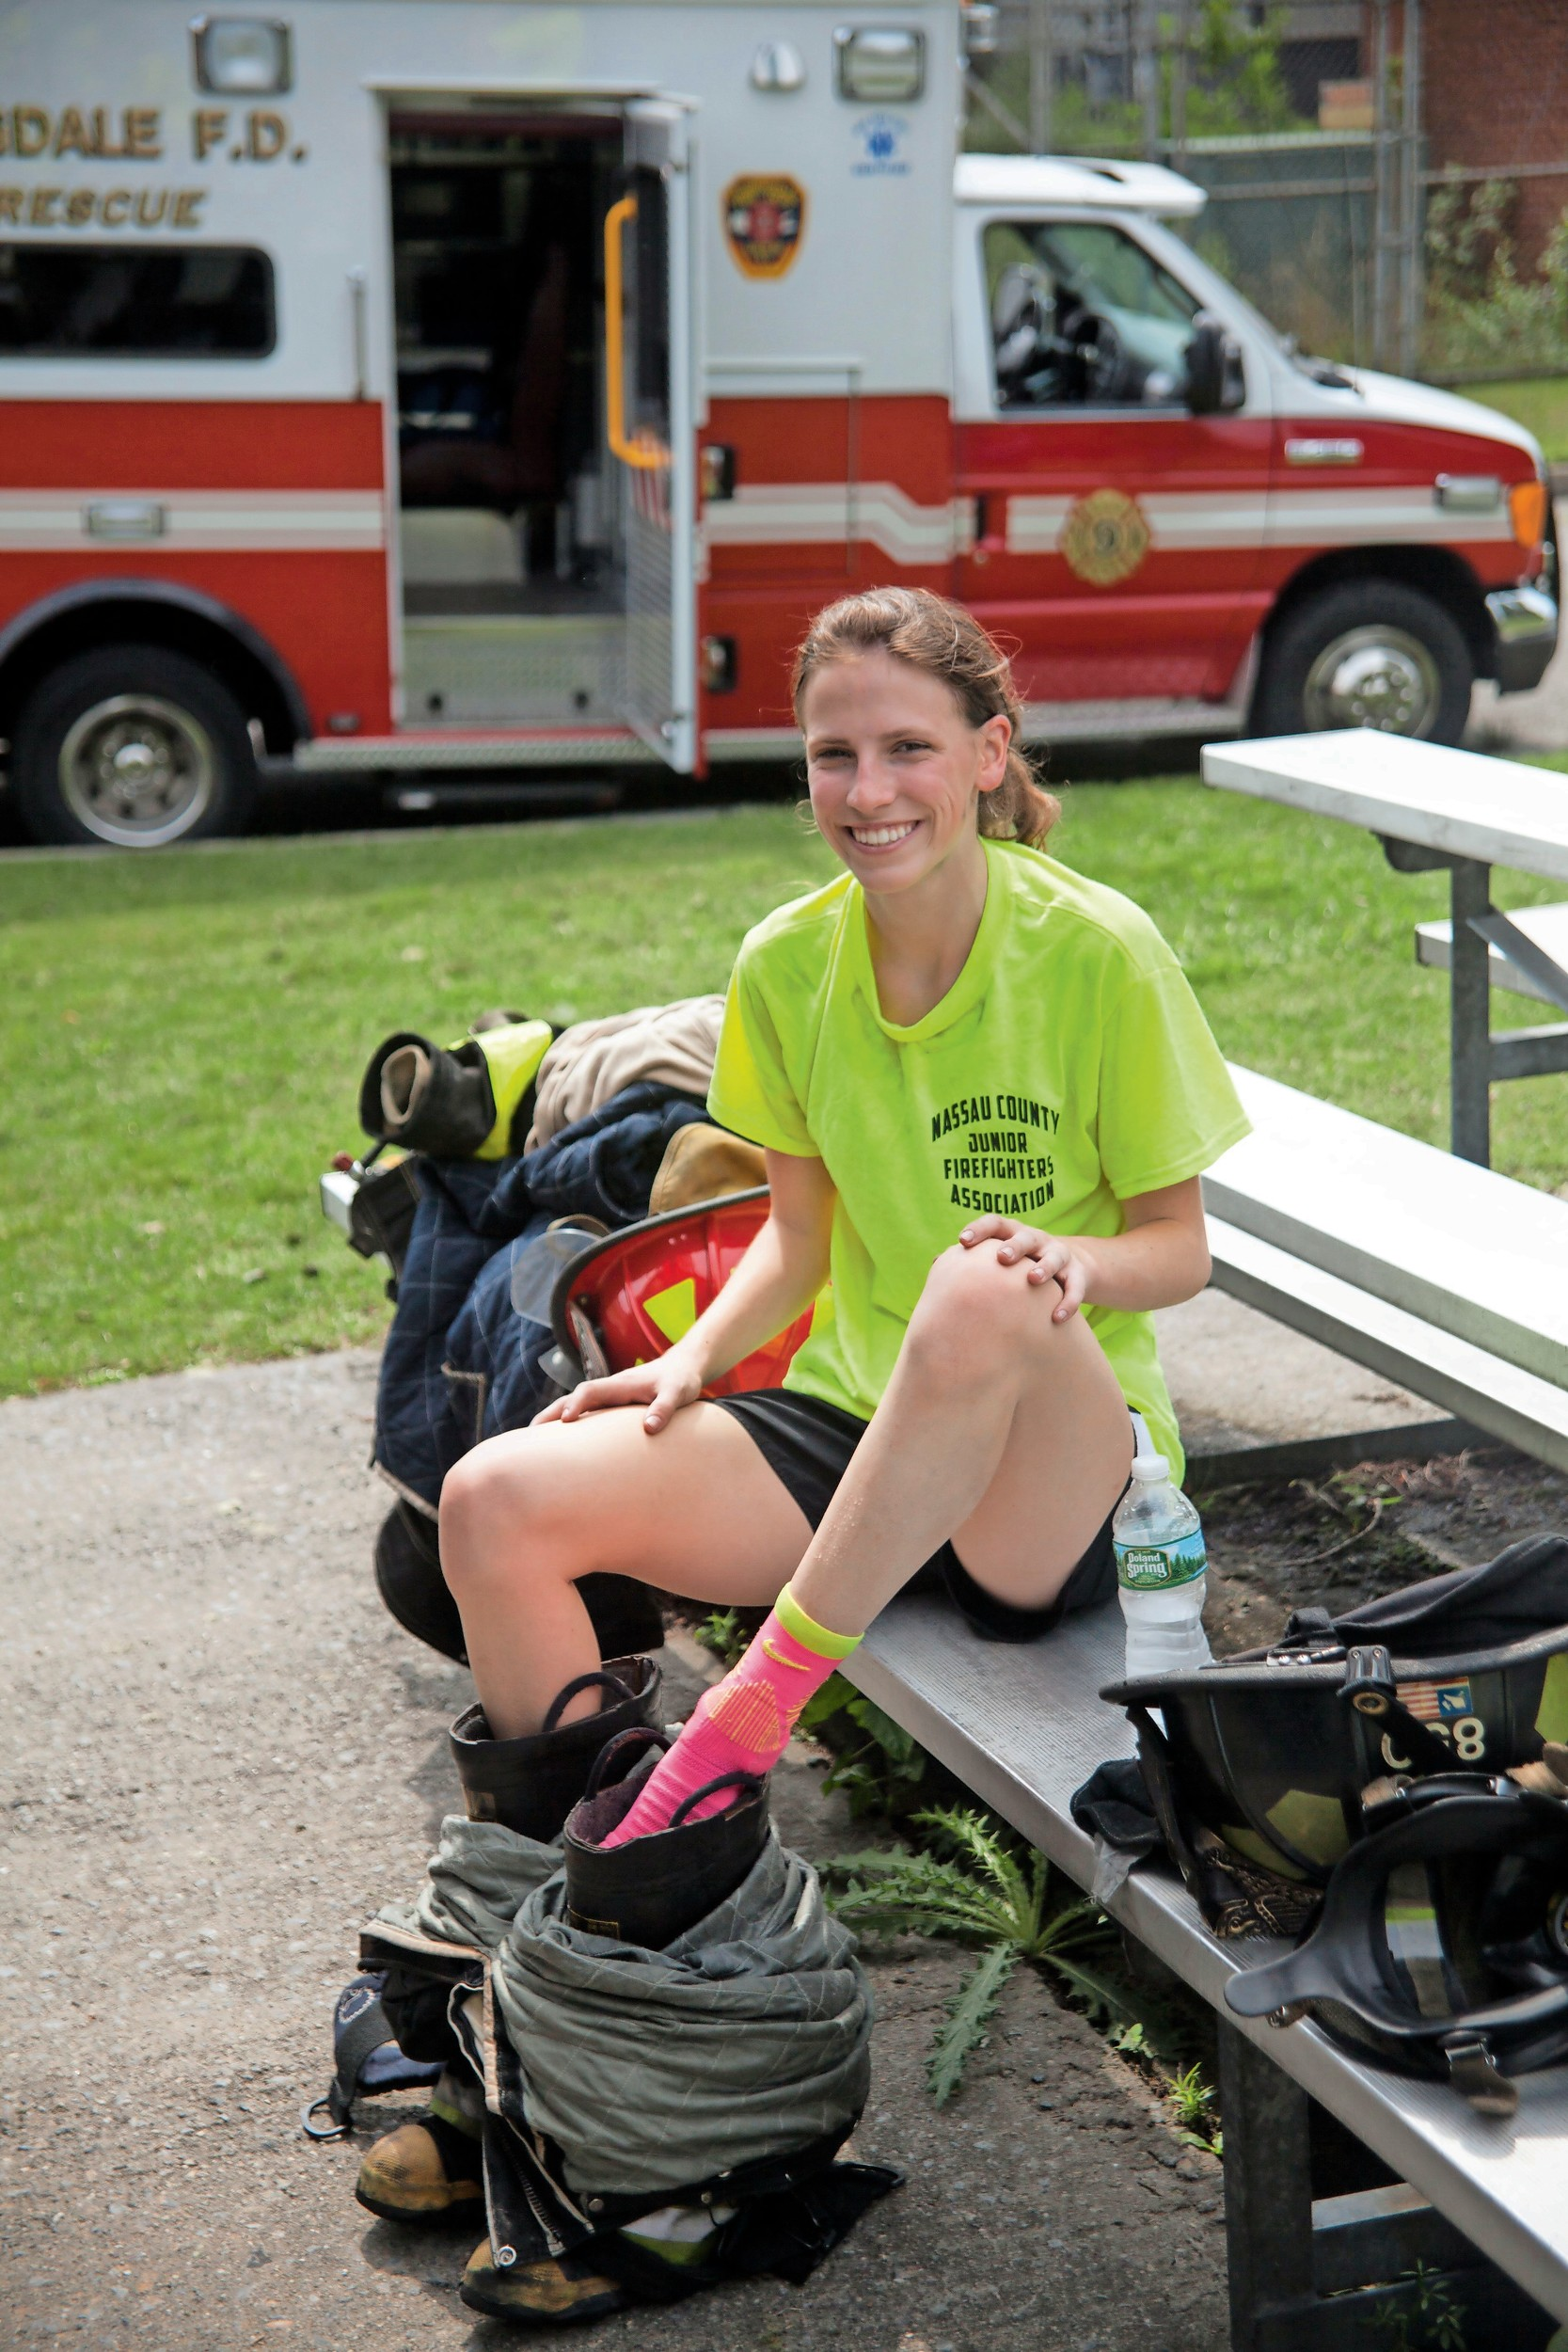 East Norwich junior fighter Colleen Joyce, 16, was relieved to take off all the fire gear after a hot day at the fire camp.